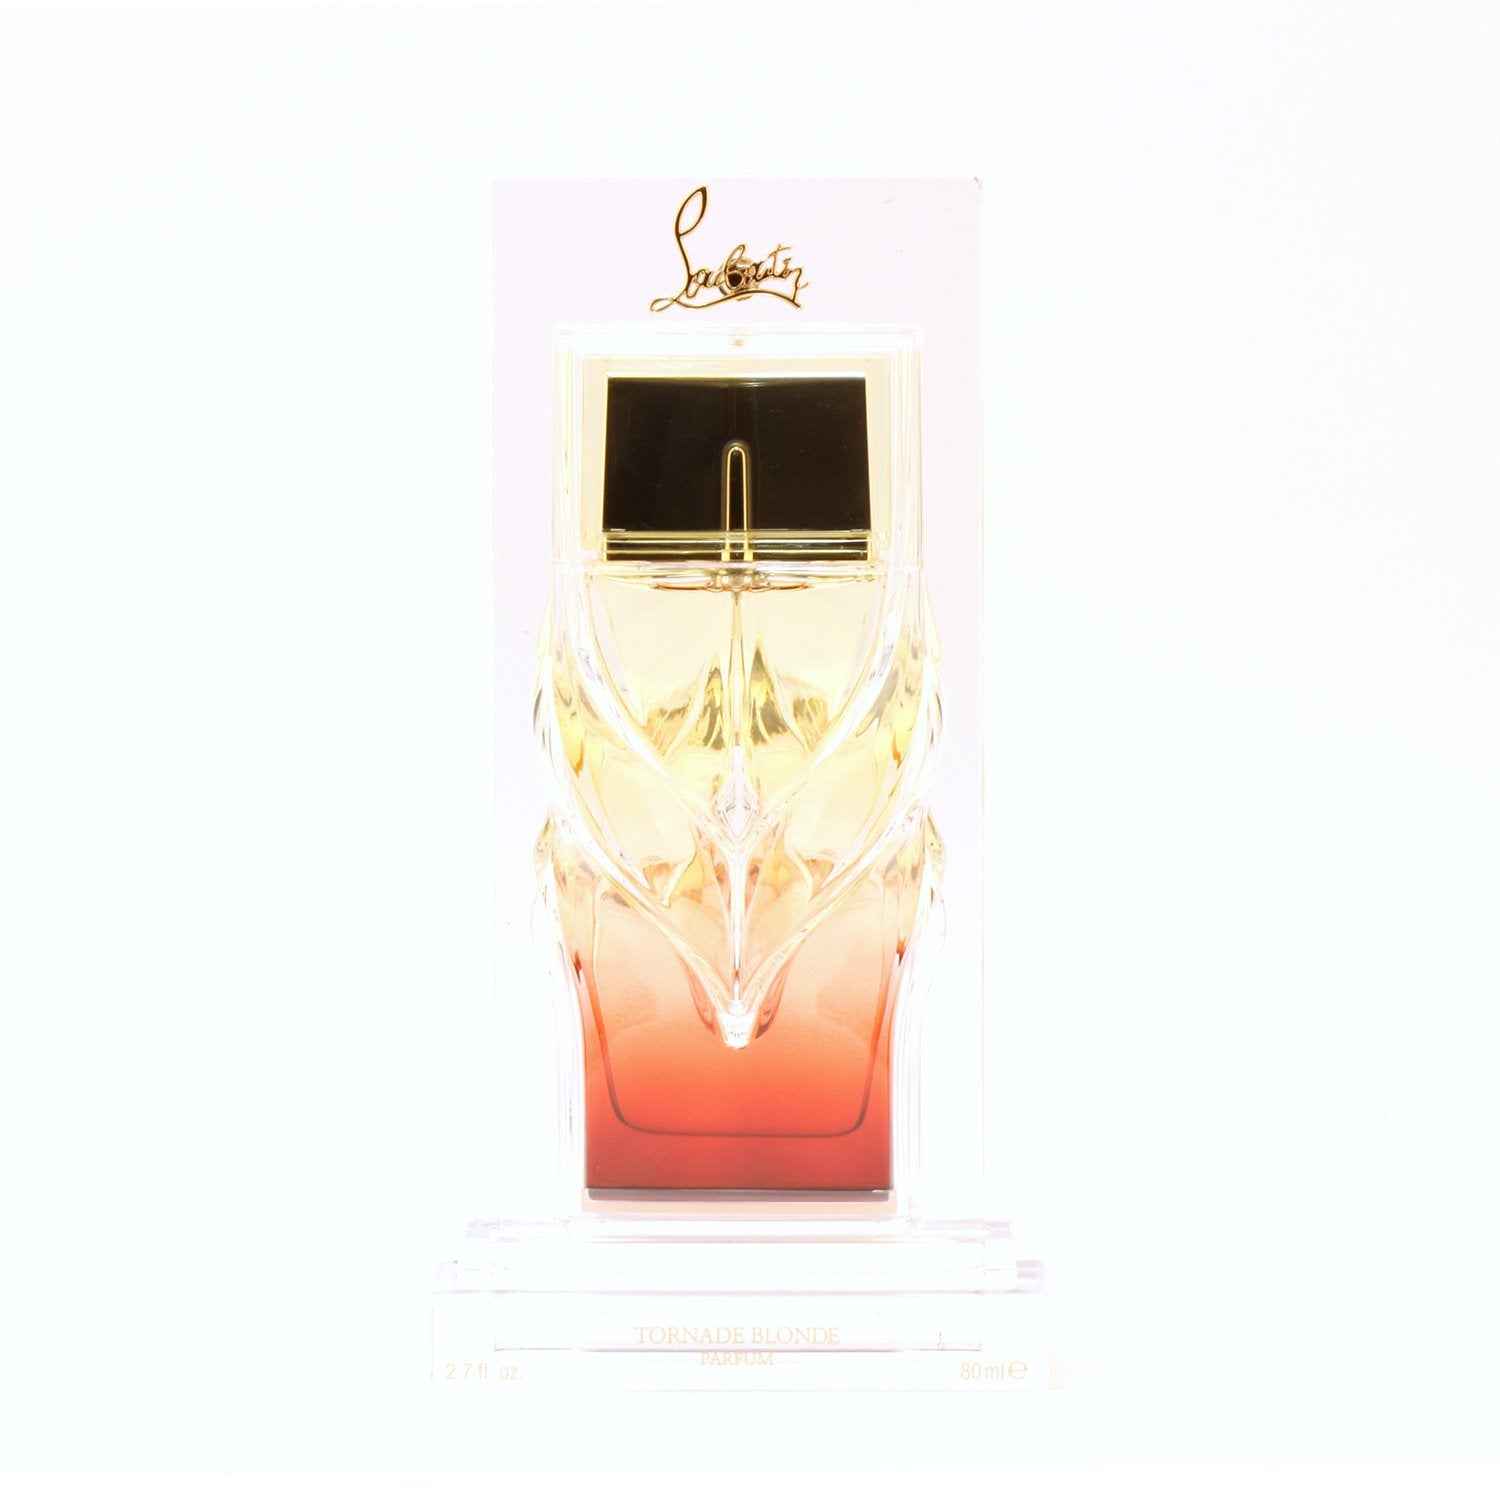 Perfume - CHRISTIAN LOUBOUTIN TORNADE BLONDE FOR WOMEN - EAU DE PARFUM SPRAY, 2.7 OZ